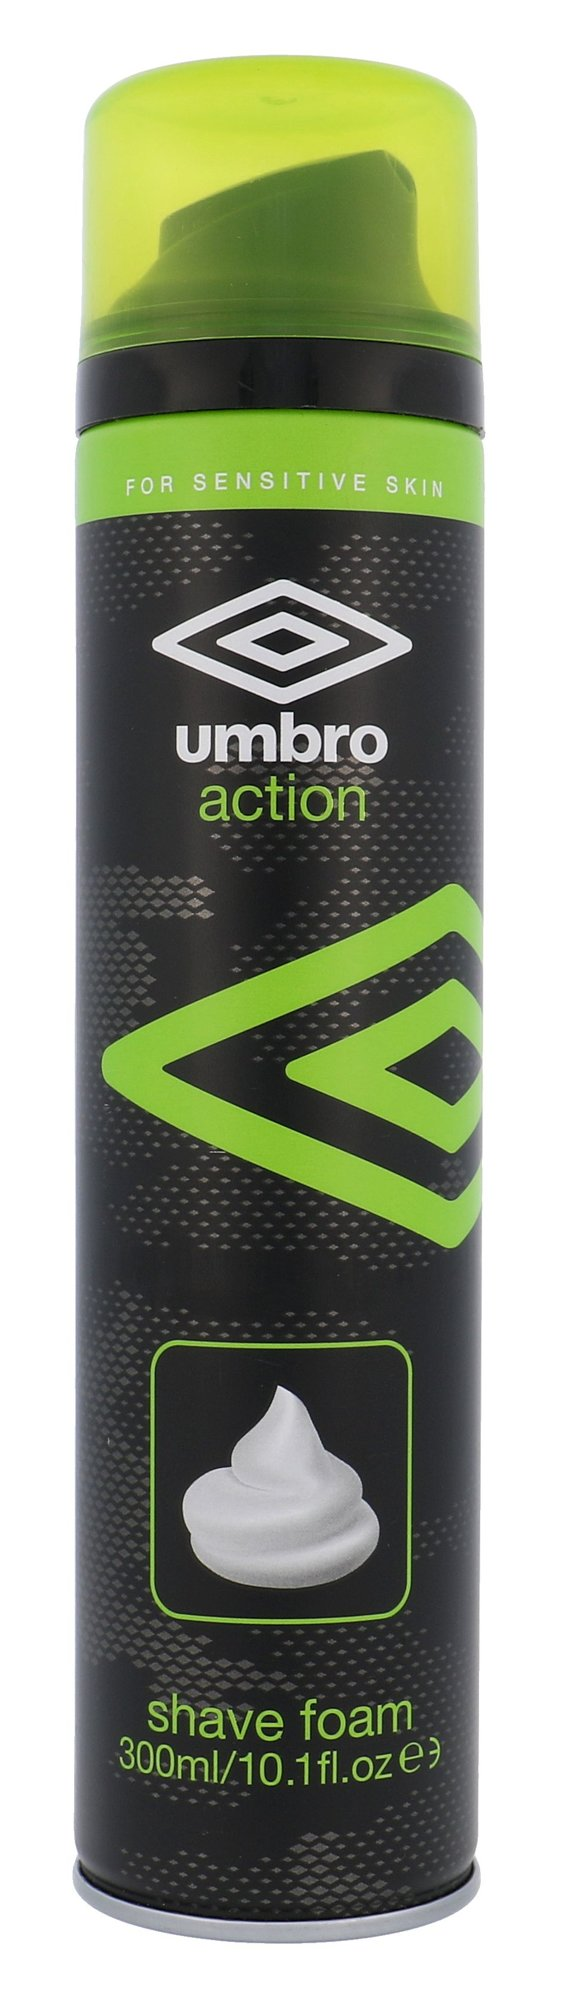 UMBRO Action Shaving foam 300ml